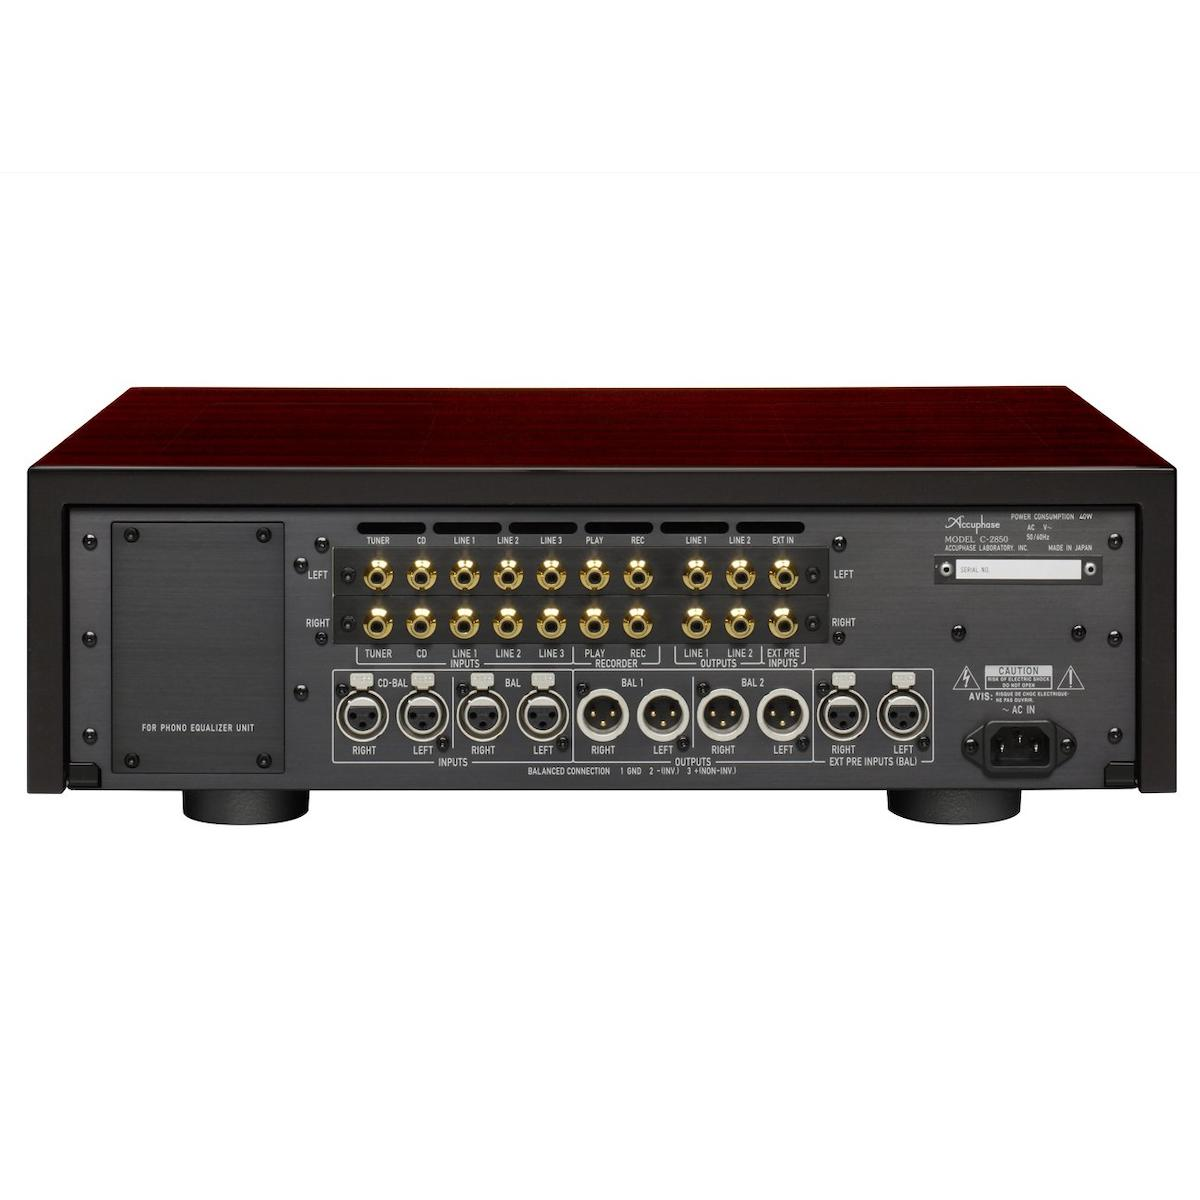 Accuphase C-2850 - Precision Stereo Preamplifier, Accuphase Laboratory, Inc., Preamplifier - AVStore.in